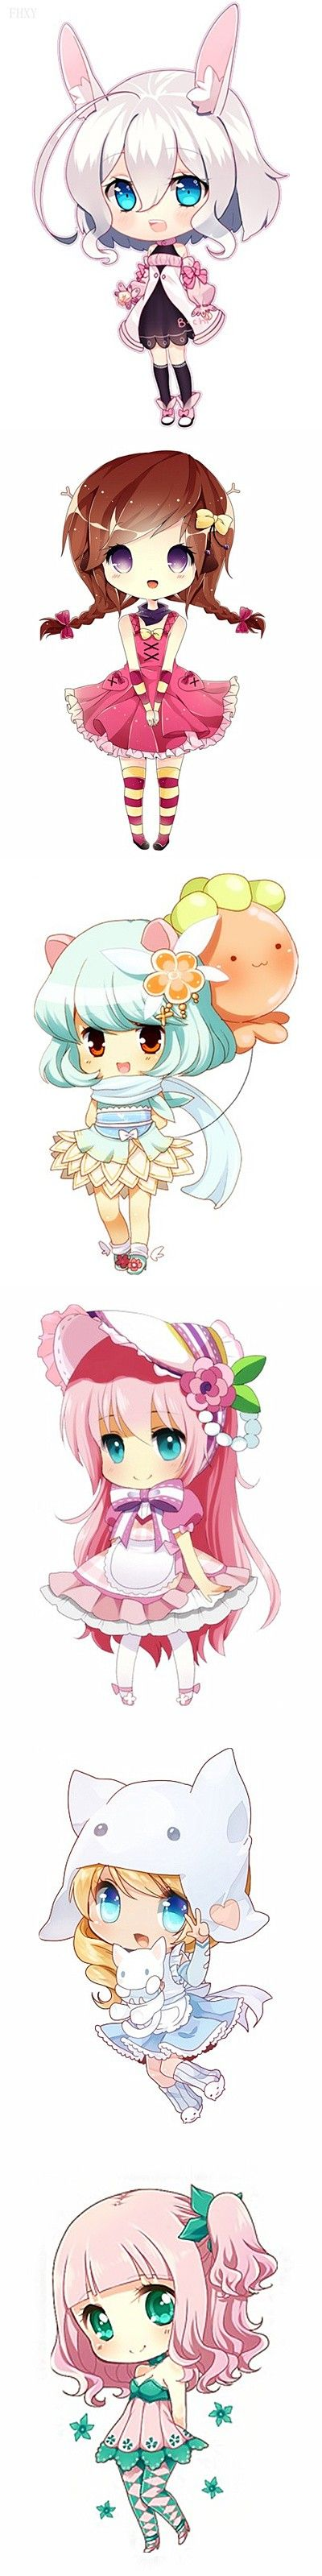 Chibis ♡ i find this rather cute